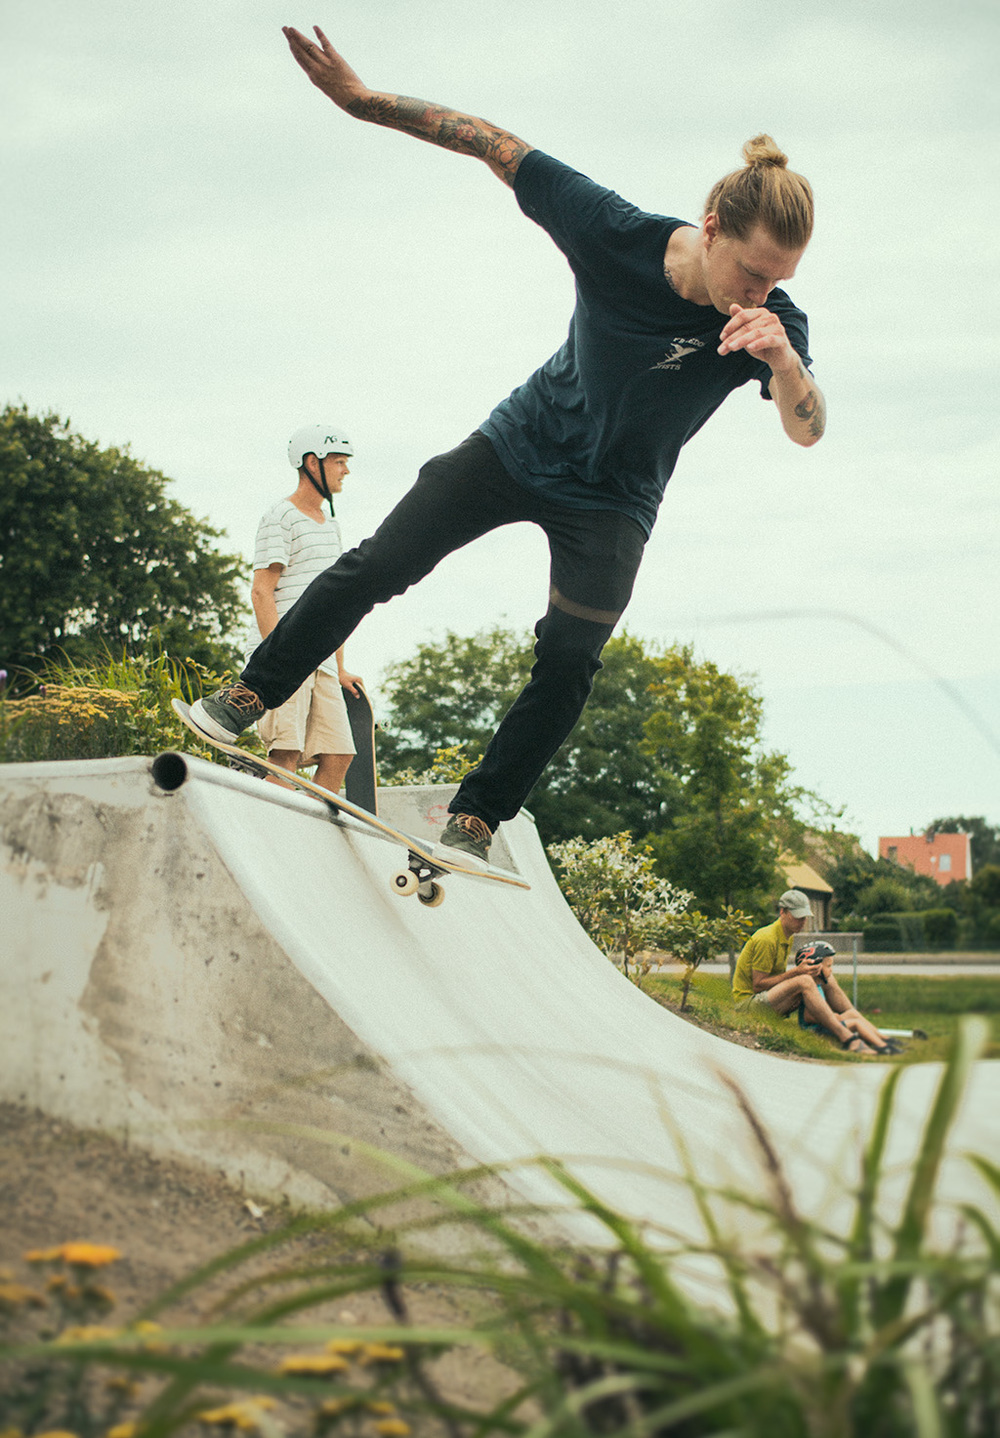 I have been to a little skate trip today with Daniel. We visited Höganäs and Ängelholm skatepark.  Here is a picture on Daniel making a Bs disaster in Höganäs.